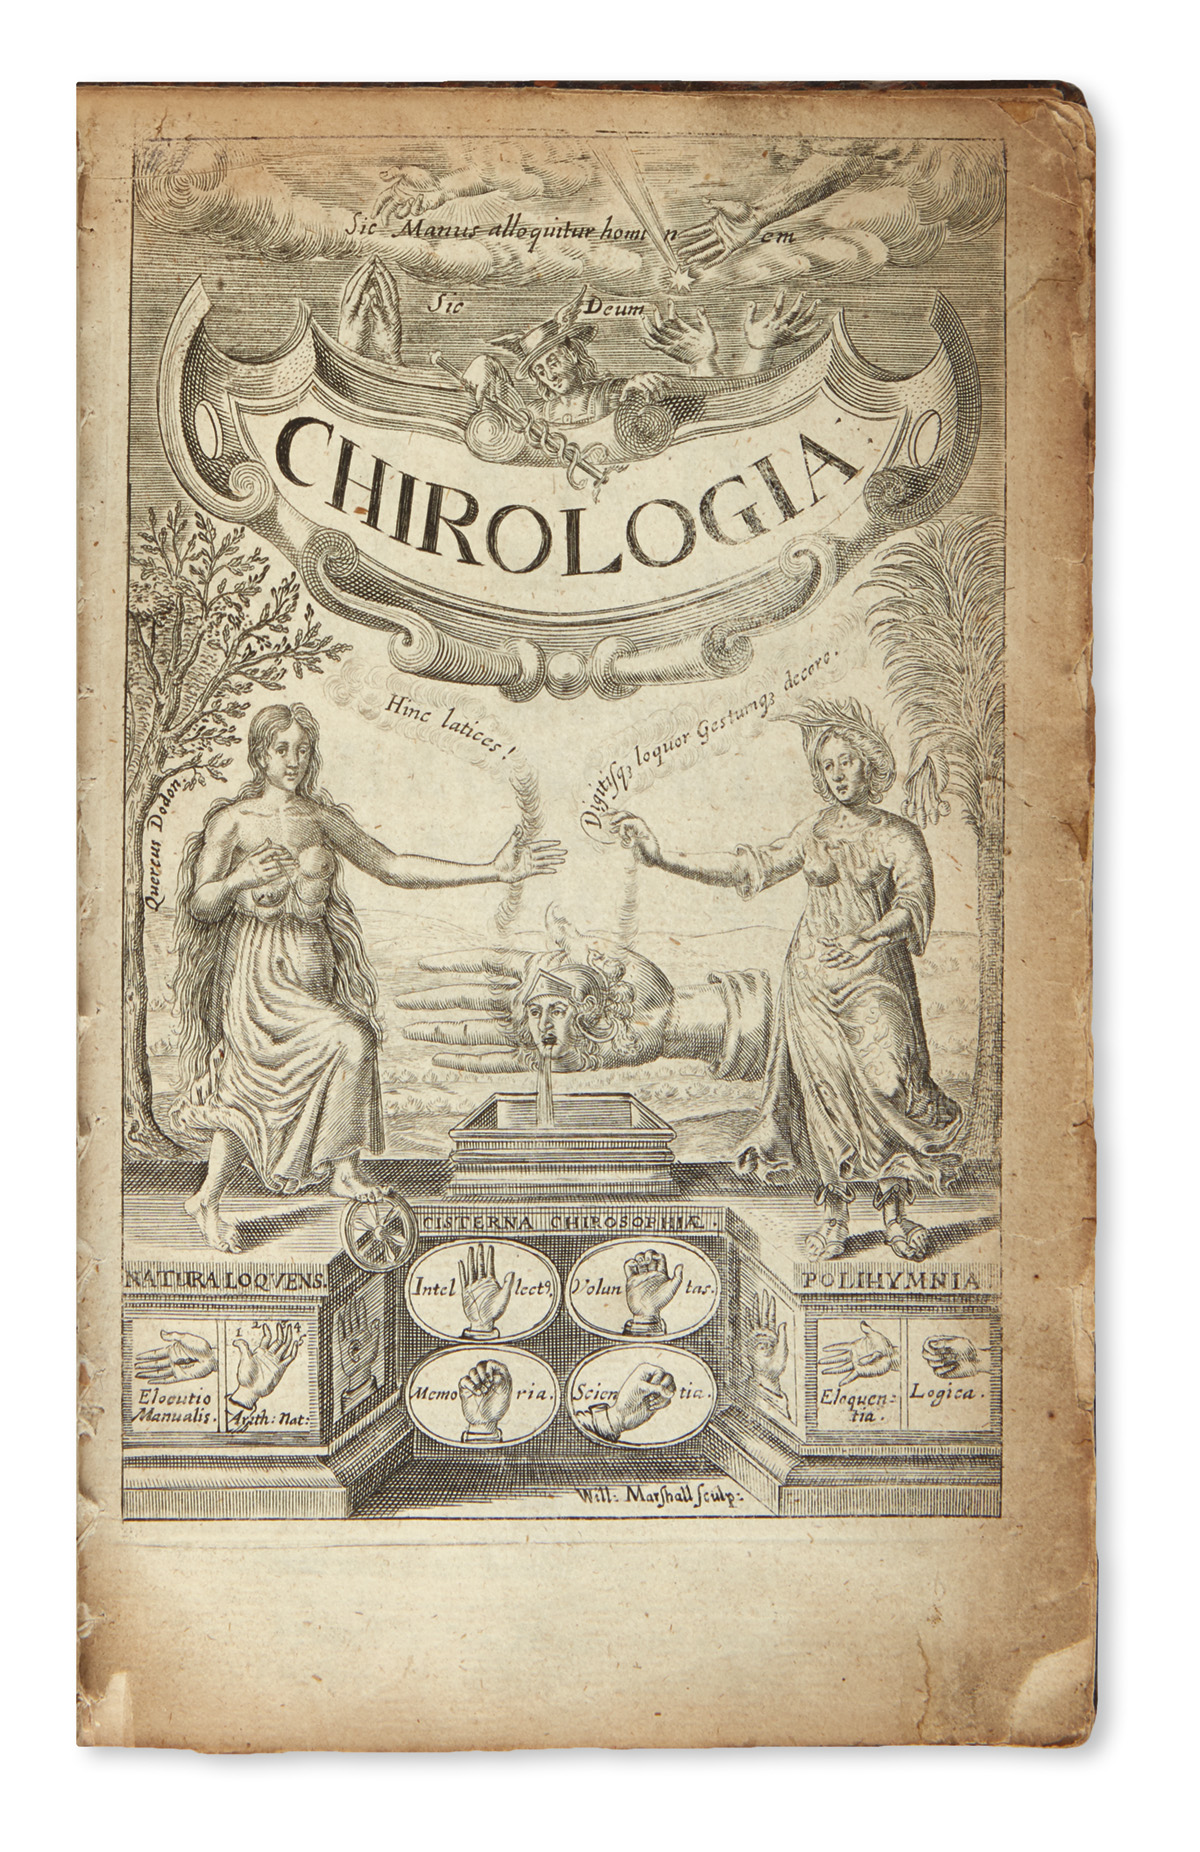 [BULWER-JOHN]---Chirologia;-or-The-Naturall-Language-of-the-